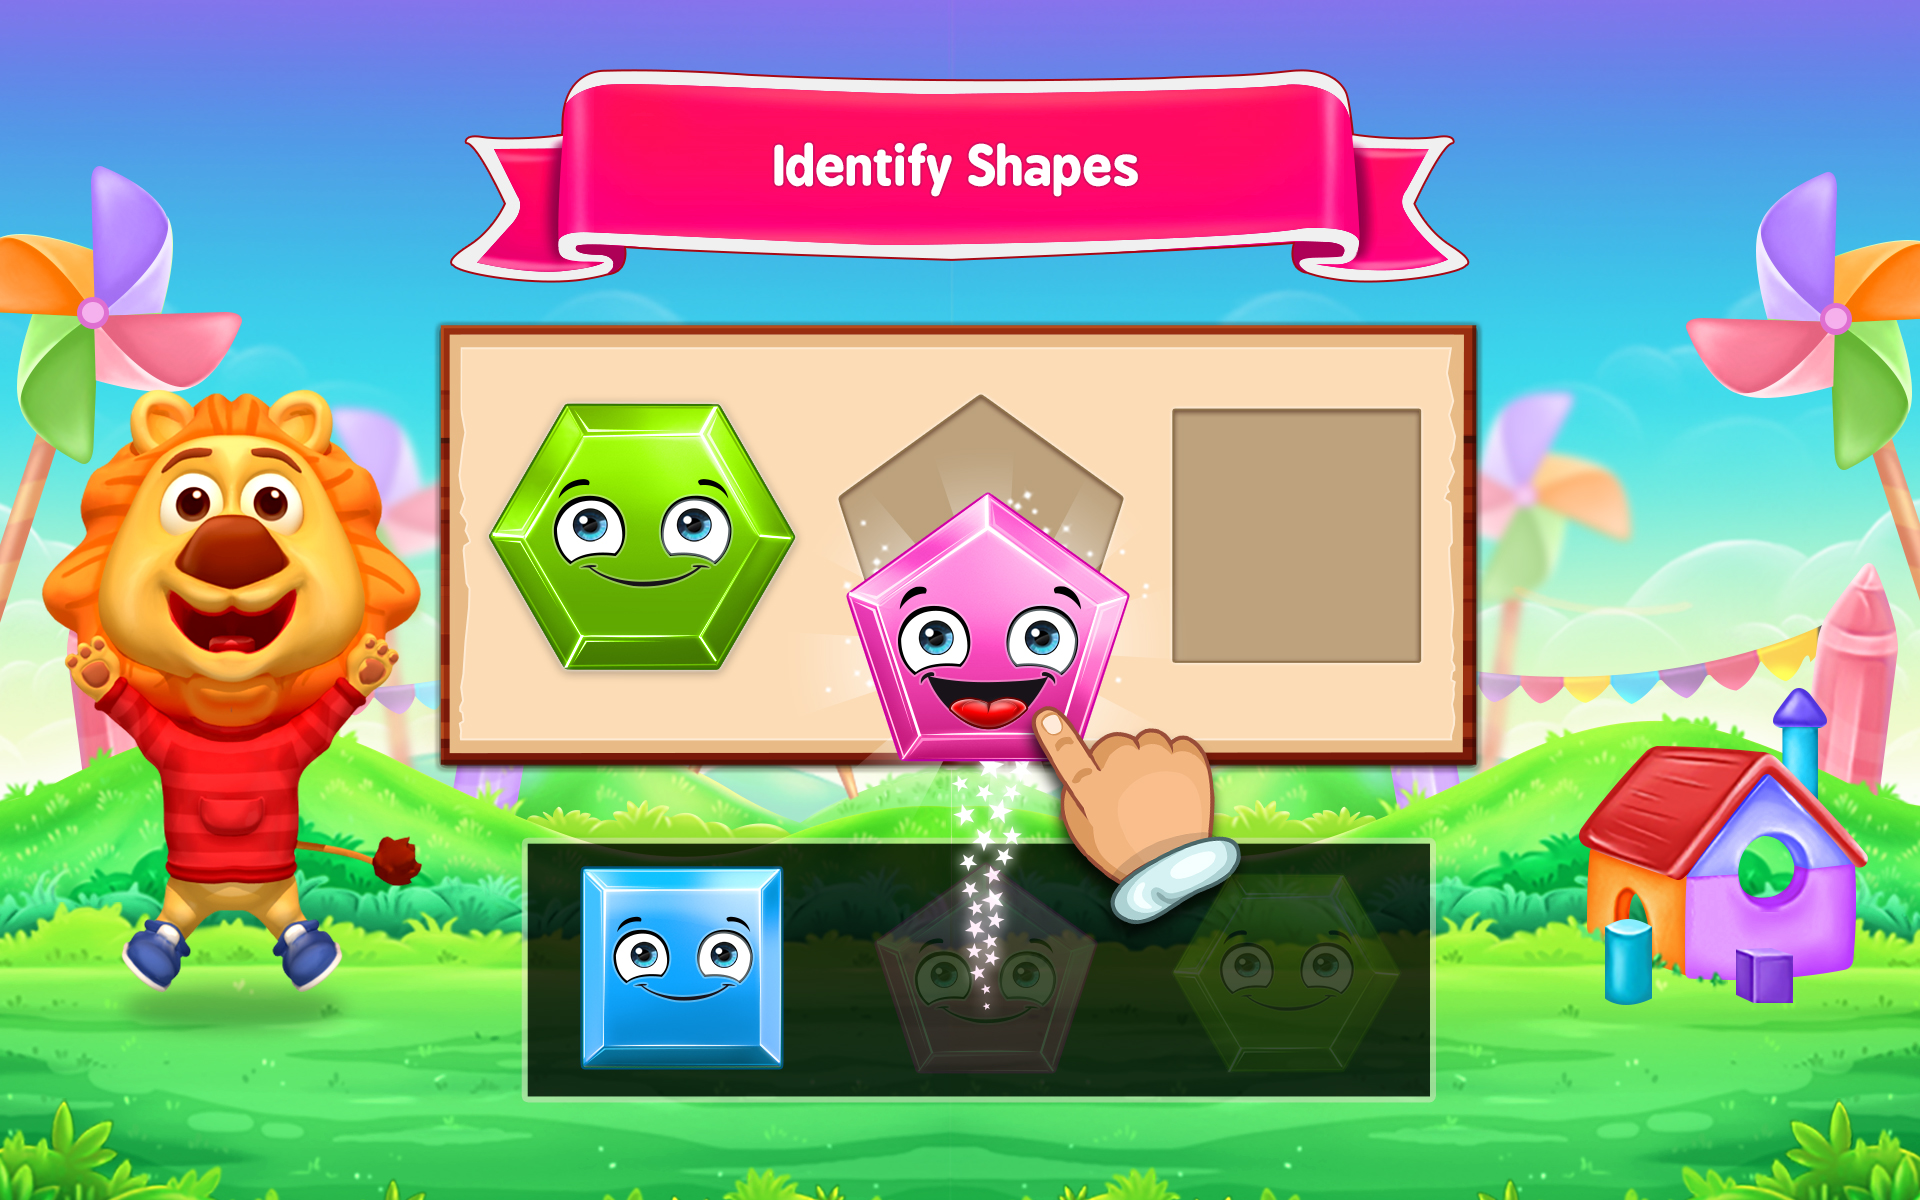 Amazon.com: Colors & Shapes - Kids Learn Color and Identify Shape ...